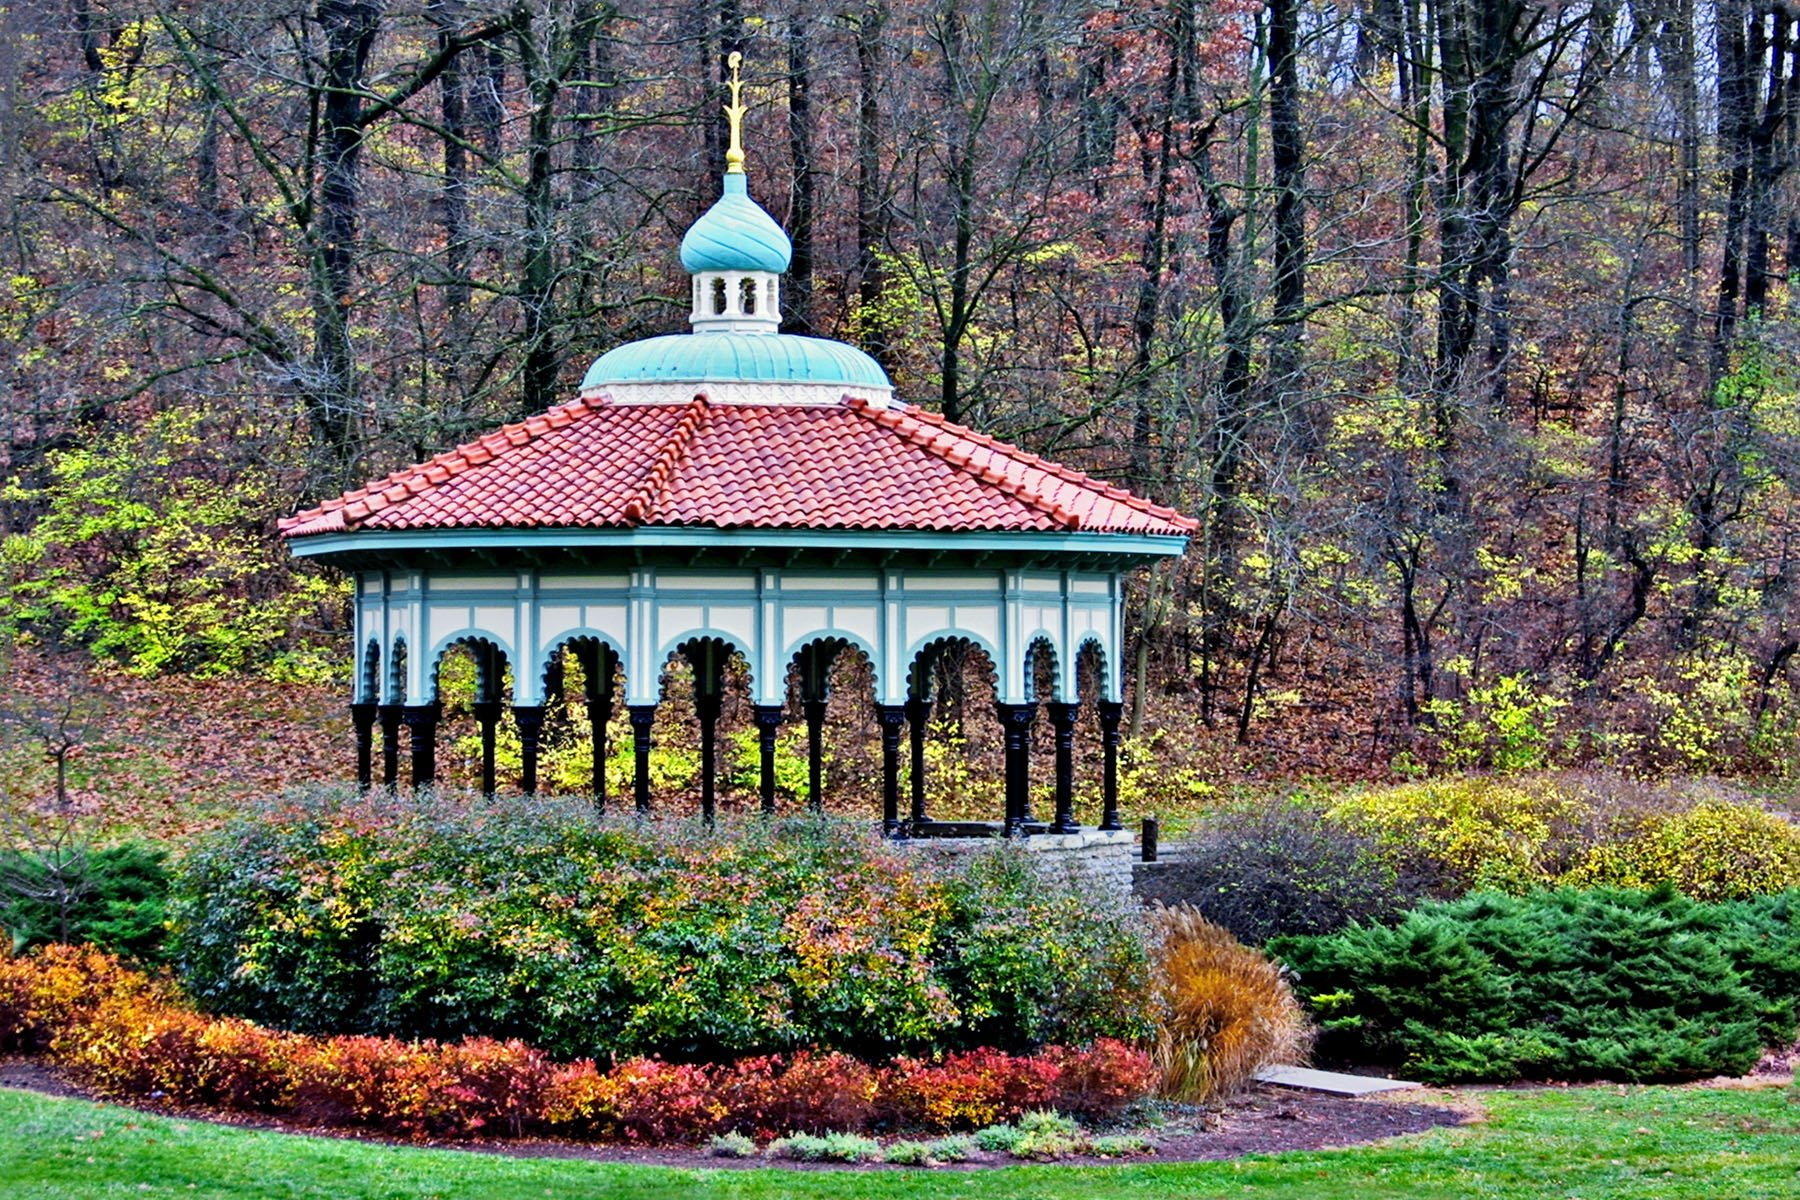 THE GAZEBO - I was there just after the gazebo in Eden Park had been given a fresh coat of paint.